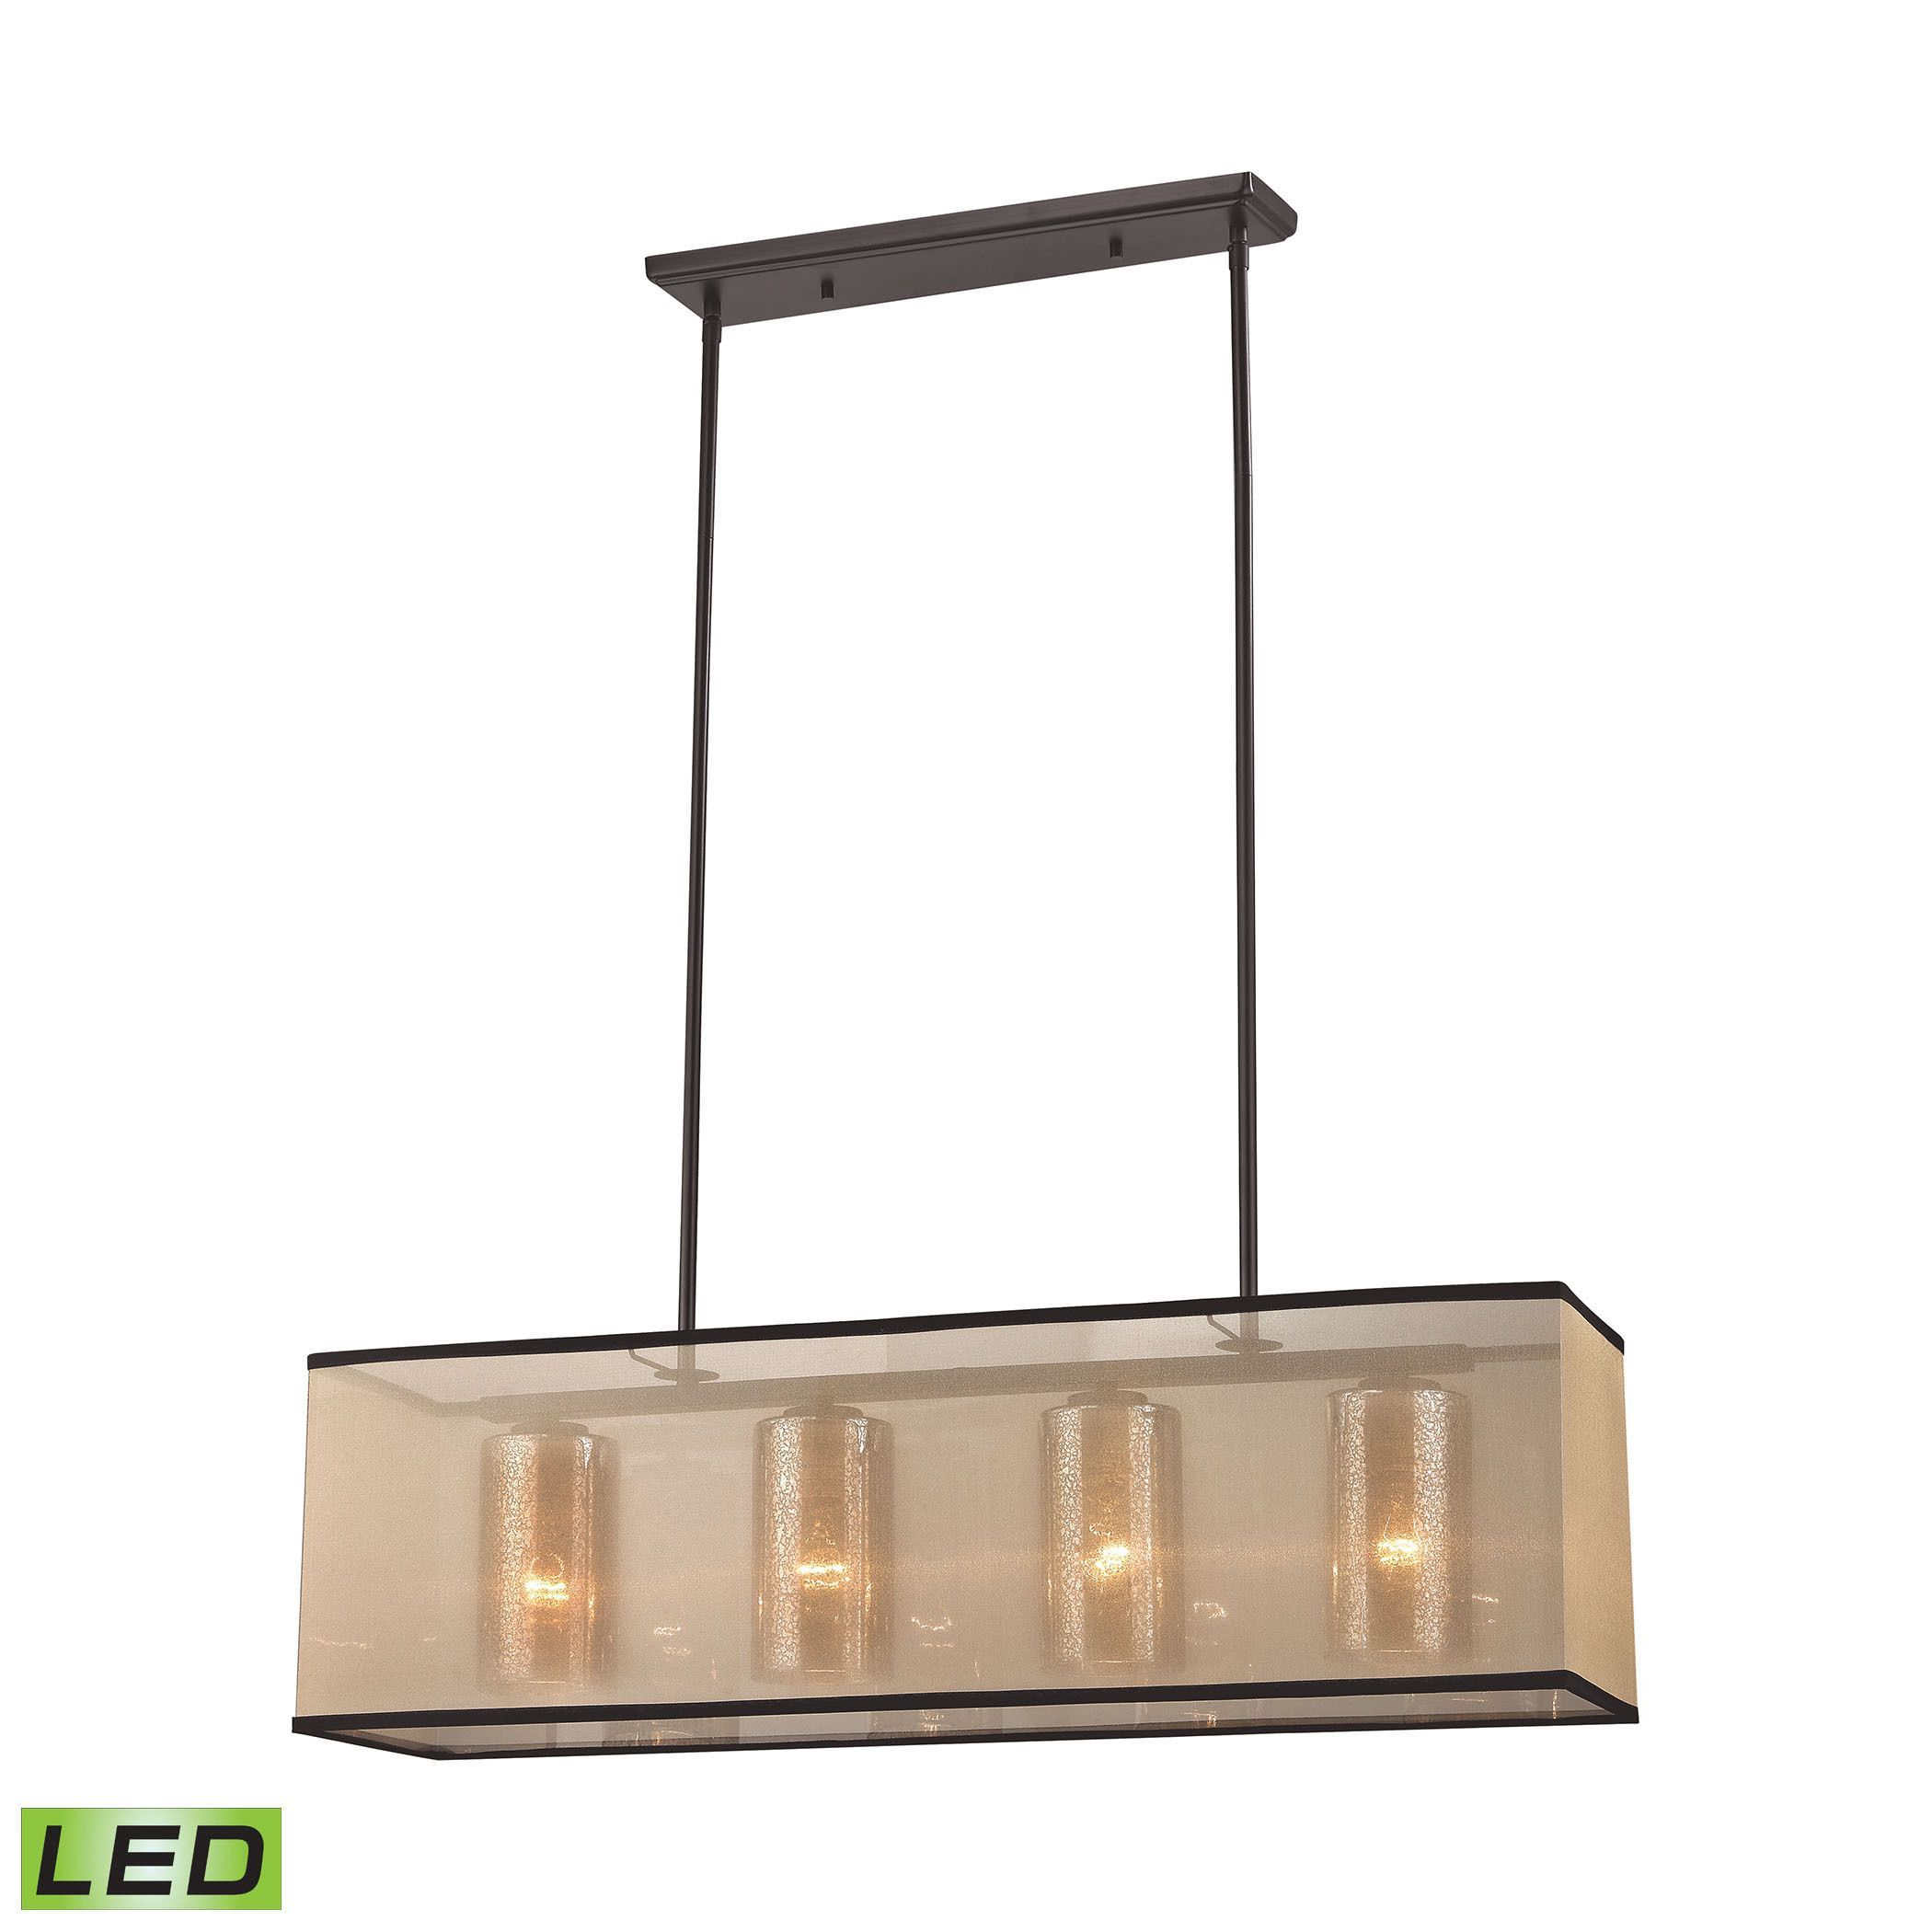 Elk Diffusion 4 light LED Chandelier in Oil Rubbed Bronze Oil